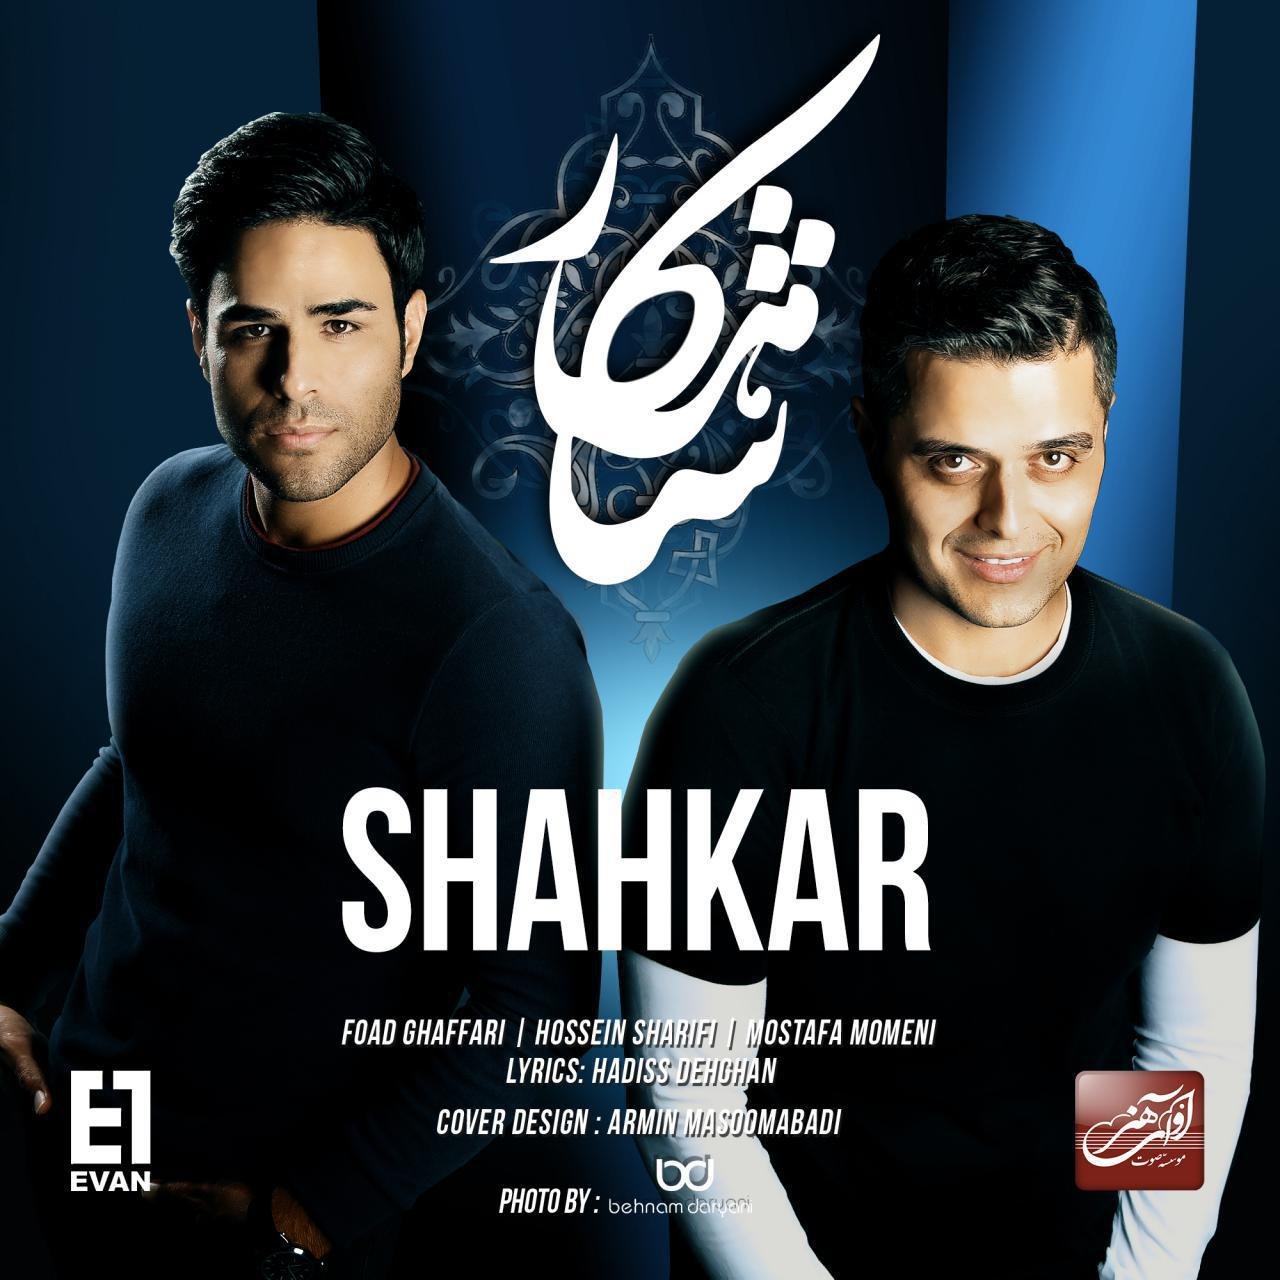 Evan Band – Shahkar